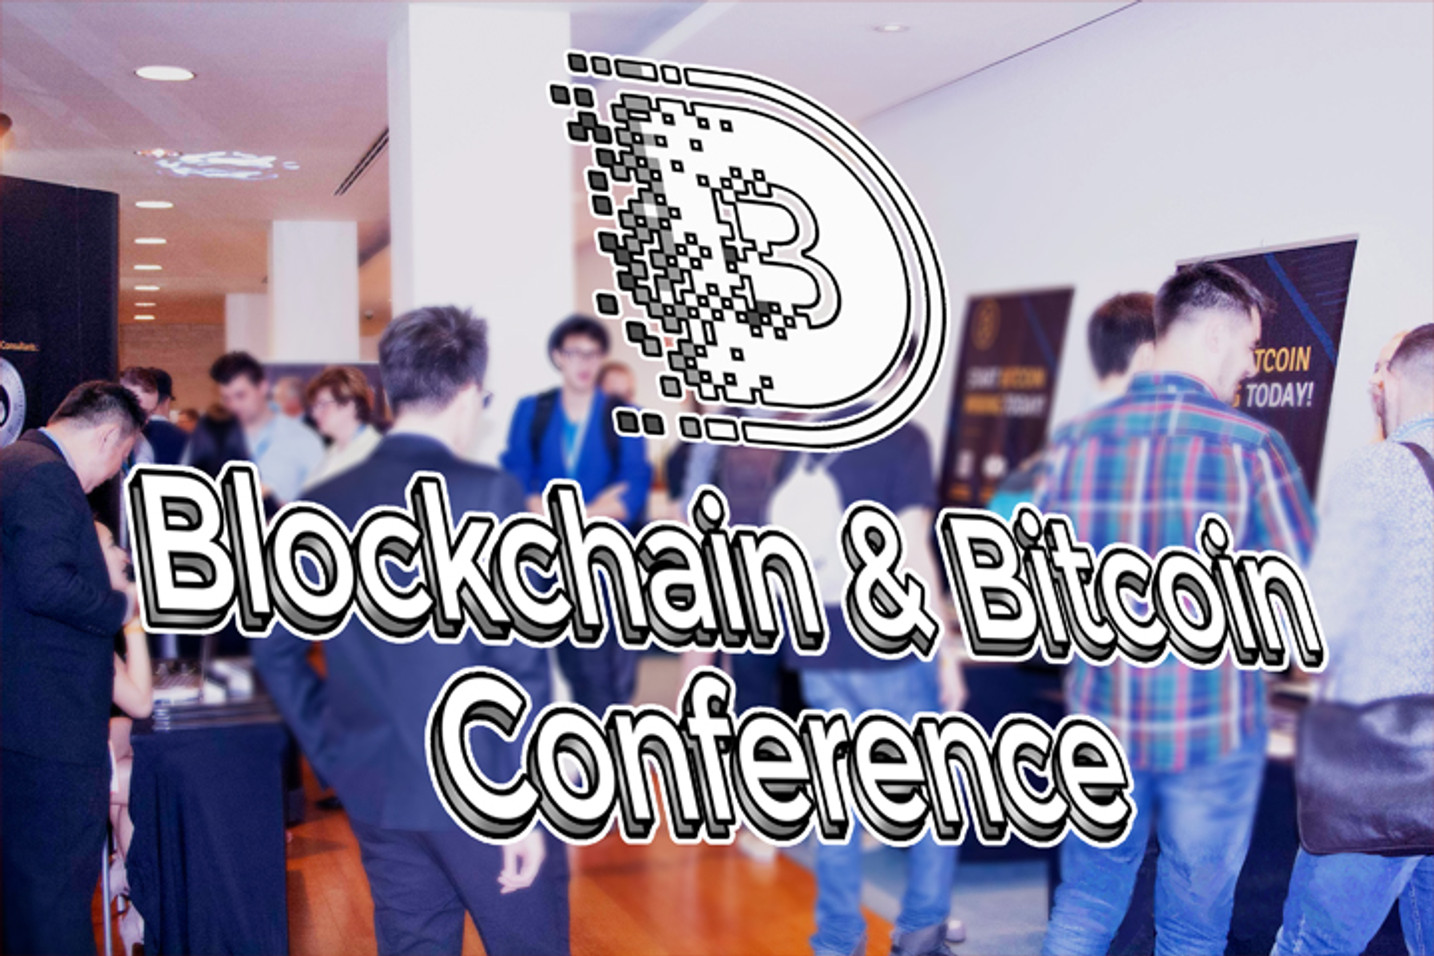 Blockchain & Bitcoin Conference Prague Participants Discussed Future Of Blockchain And Cryptocurrencies